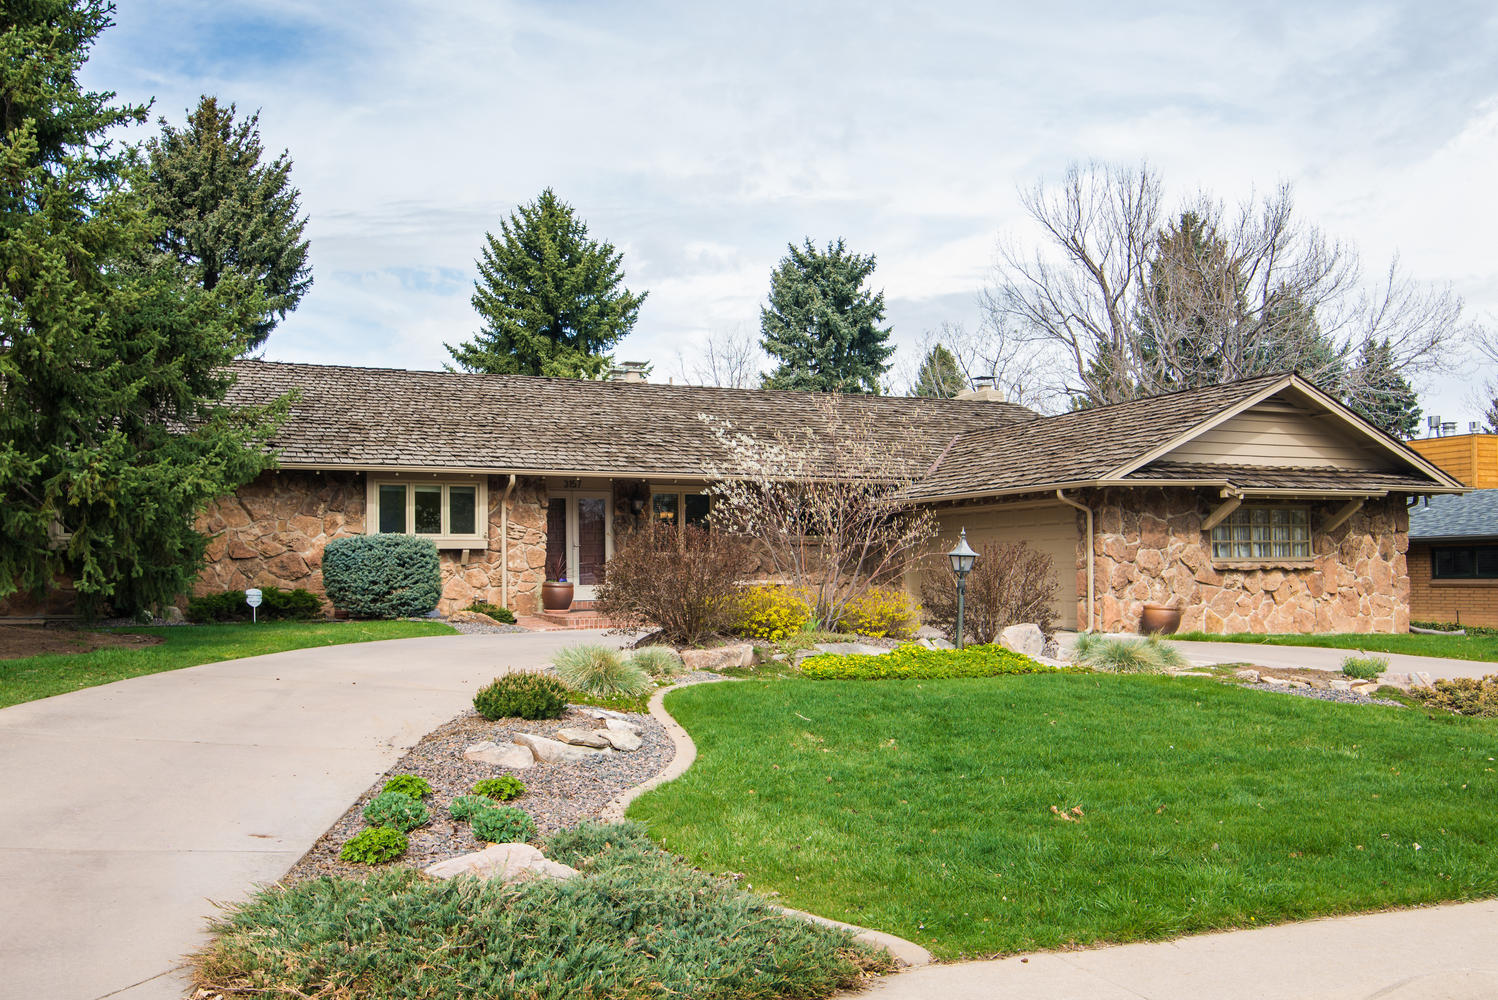 Single Family Home for Sale at Classic Southern Hills Ranch in prime locations 3157 S Dallas Ct Denver, Colorado, 80210 United States